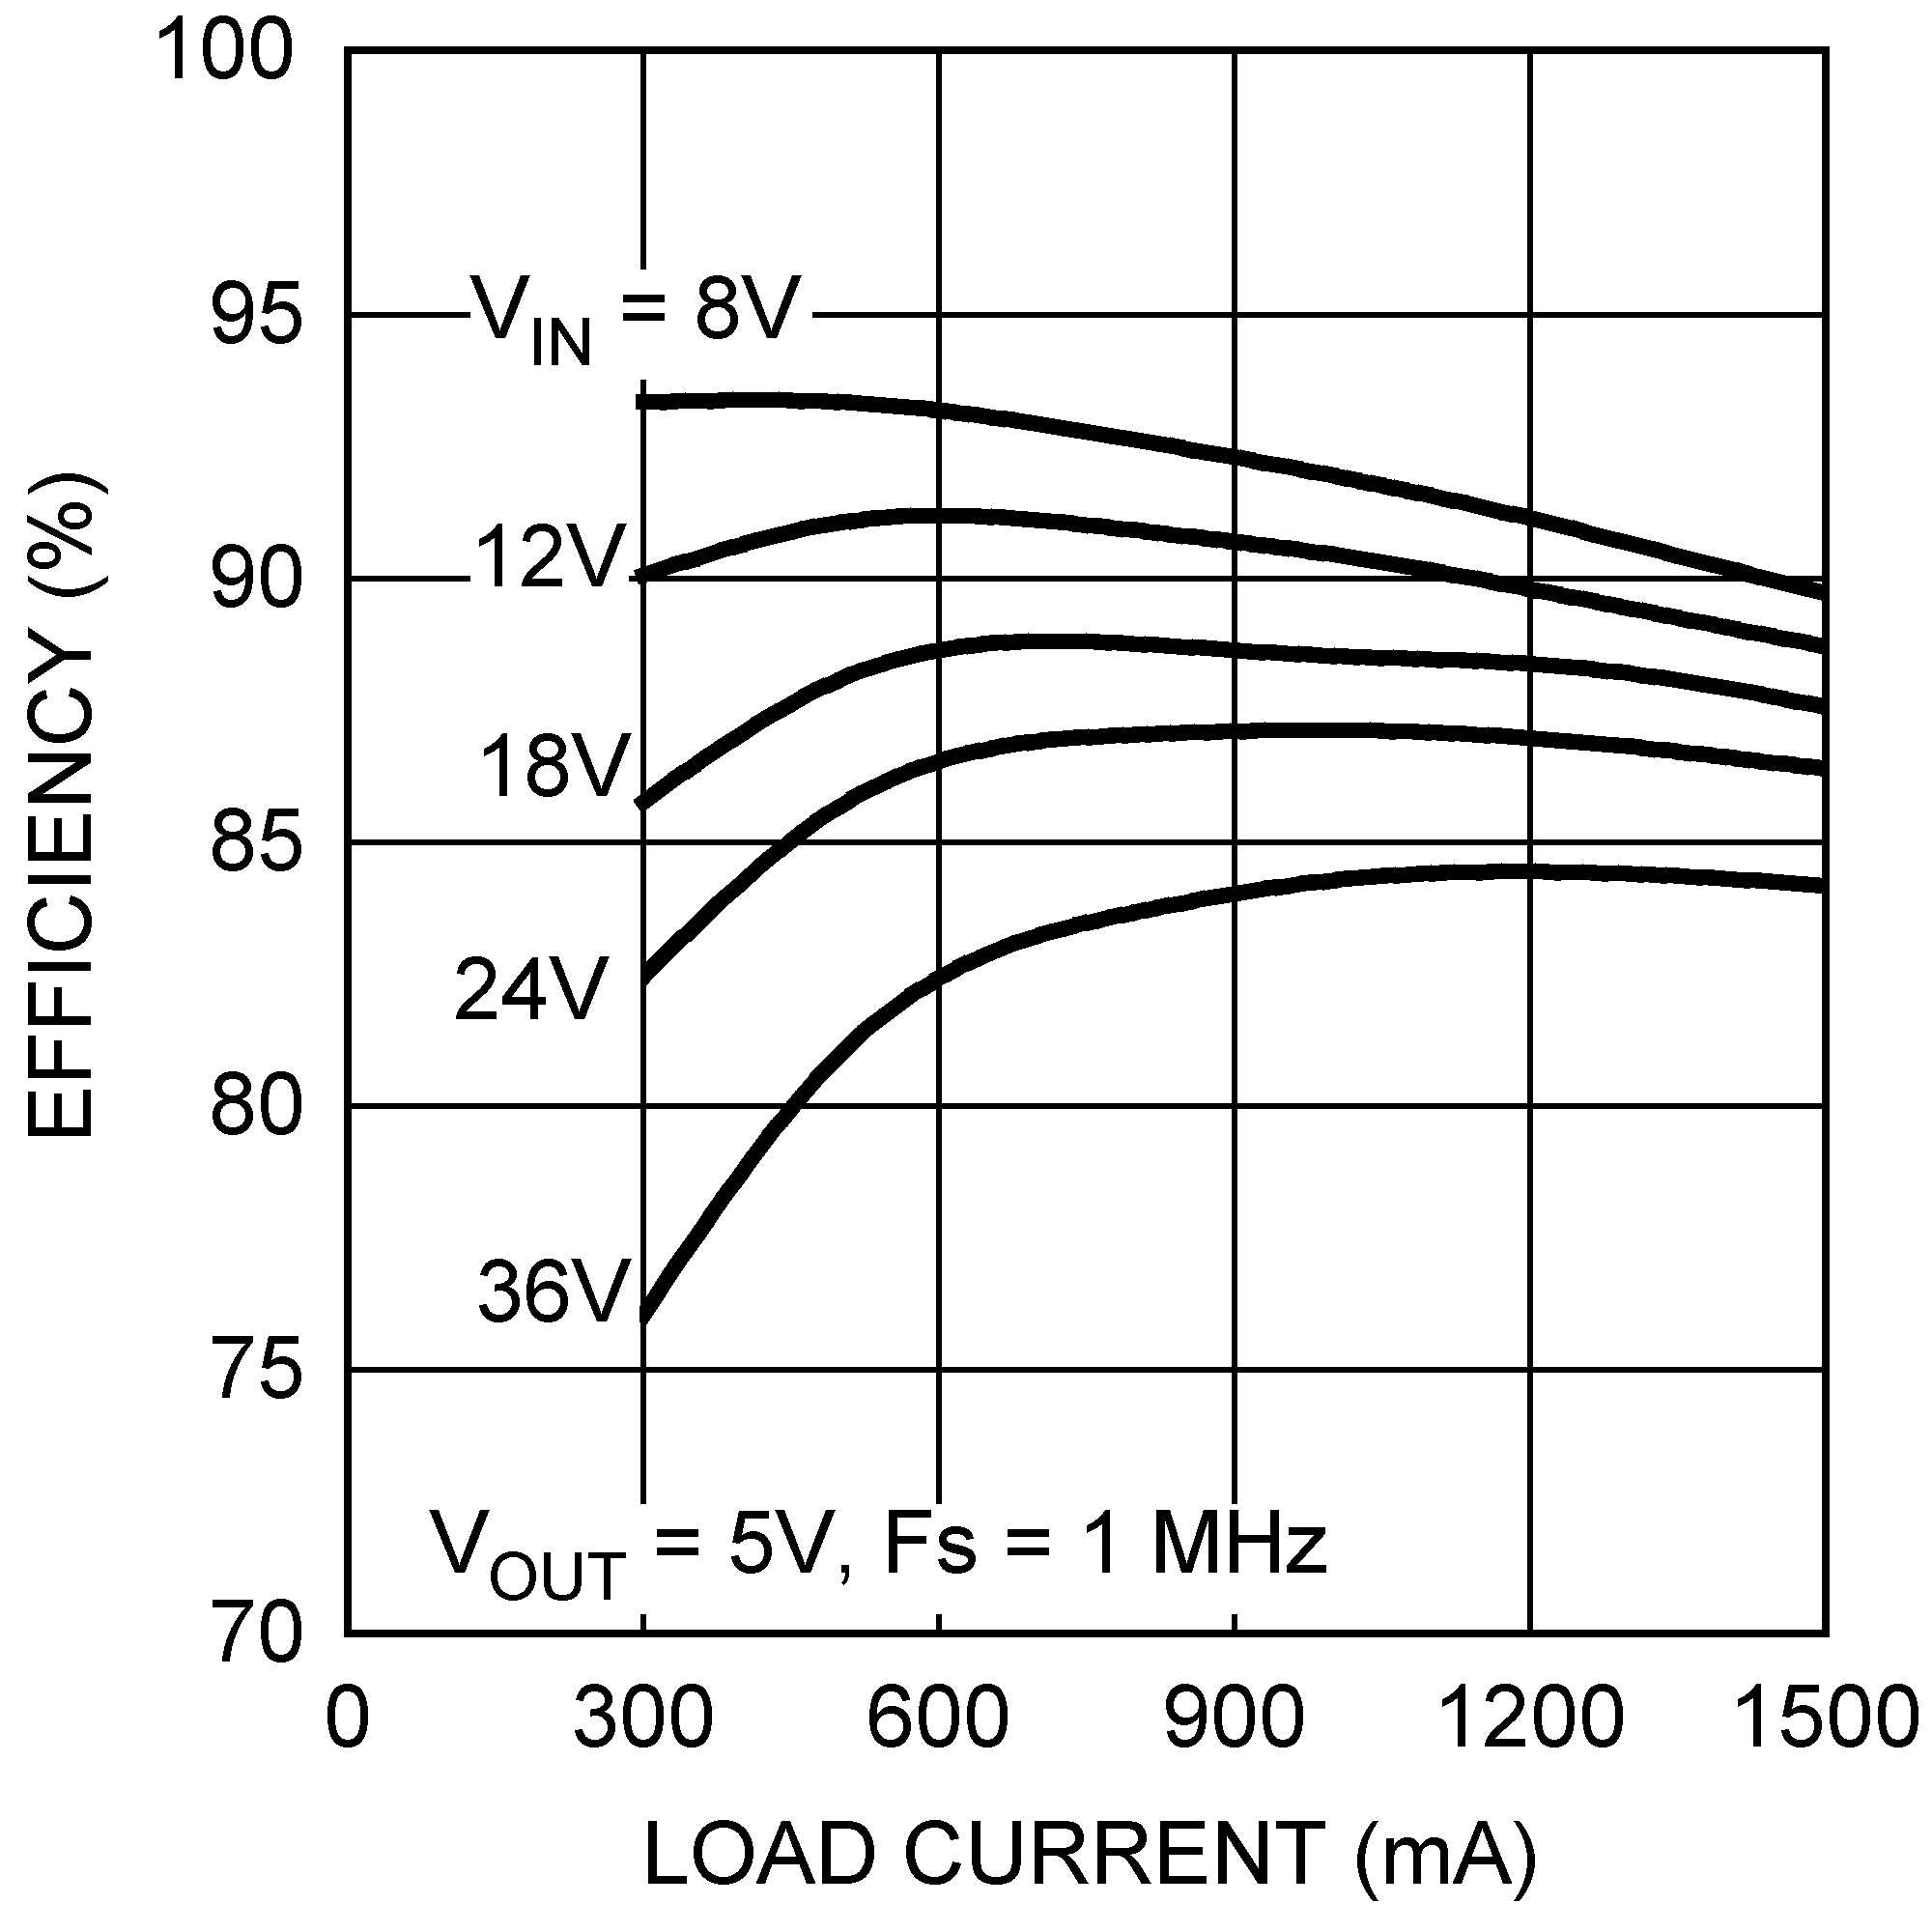 Lm25011 Currentlimit Circuit For The Buck Regulator 8213 Application Curves